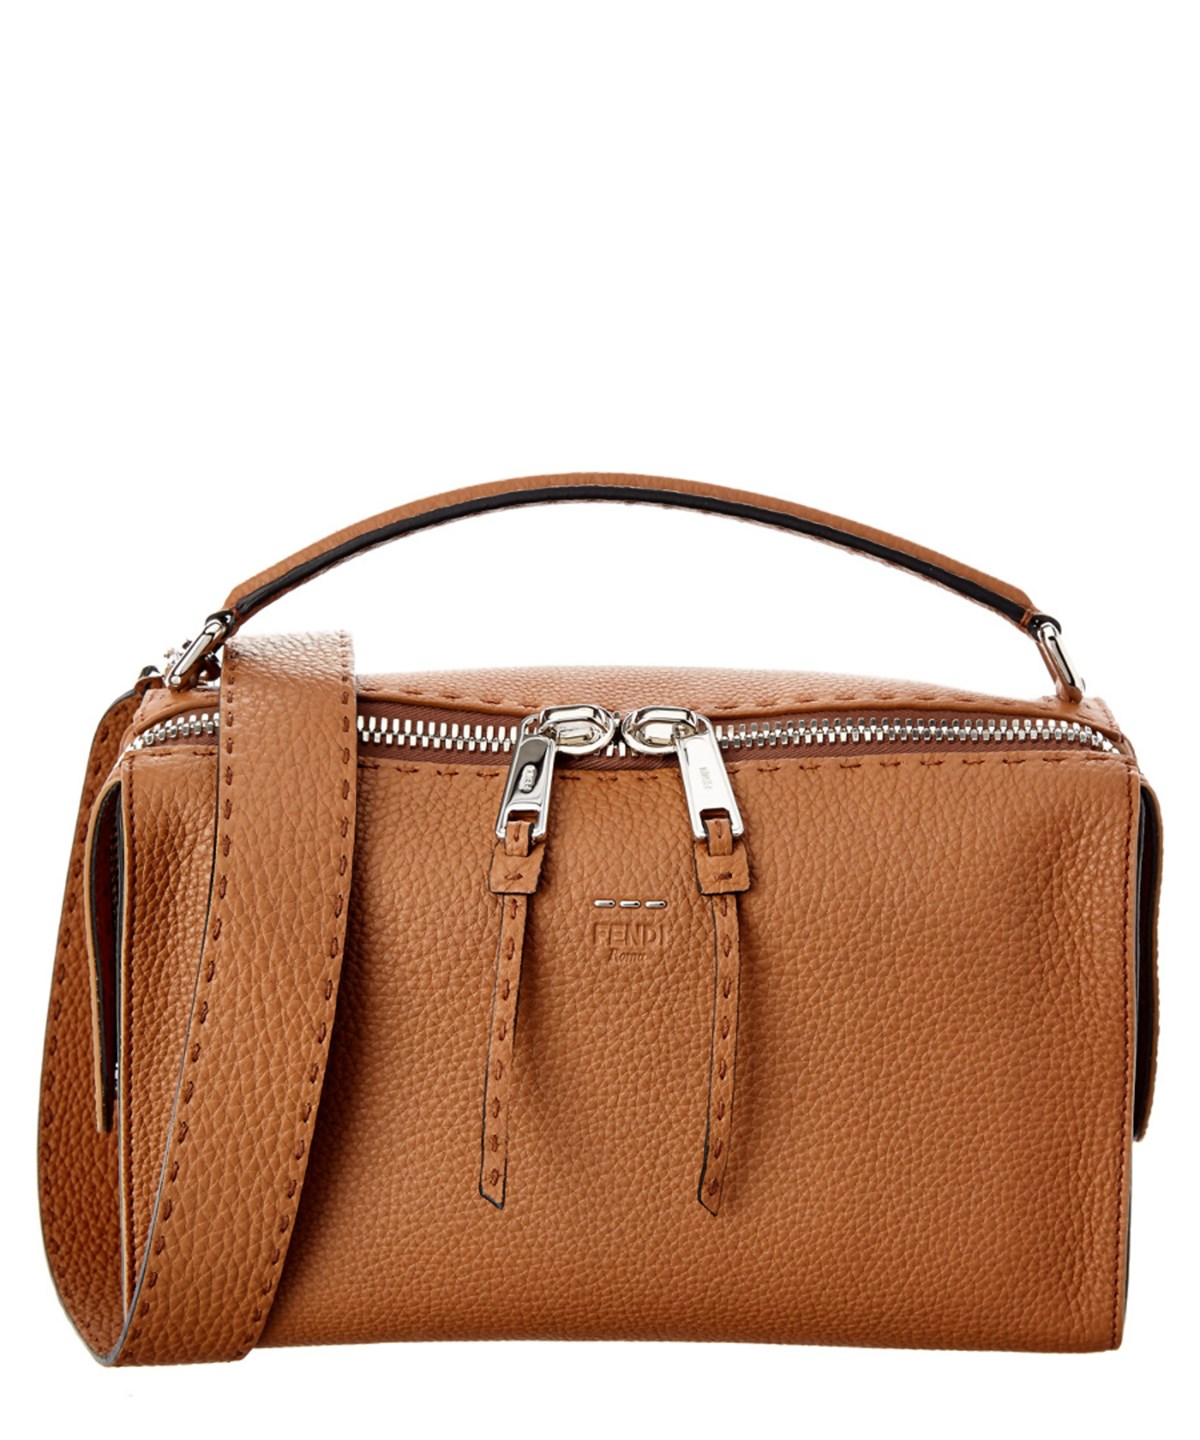 f293ab0e85 Fendi Lei Selleria Leather Boston Bag  In Brown